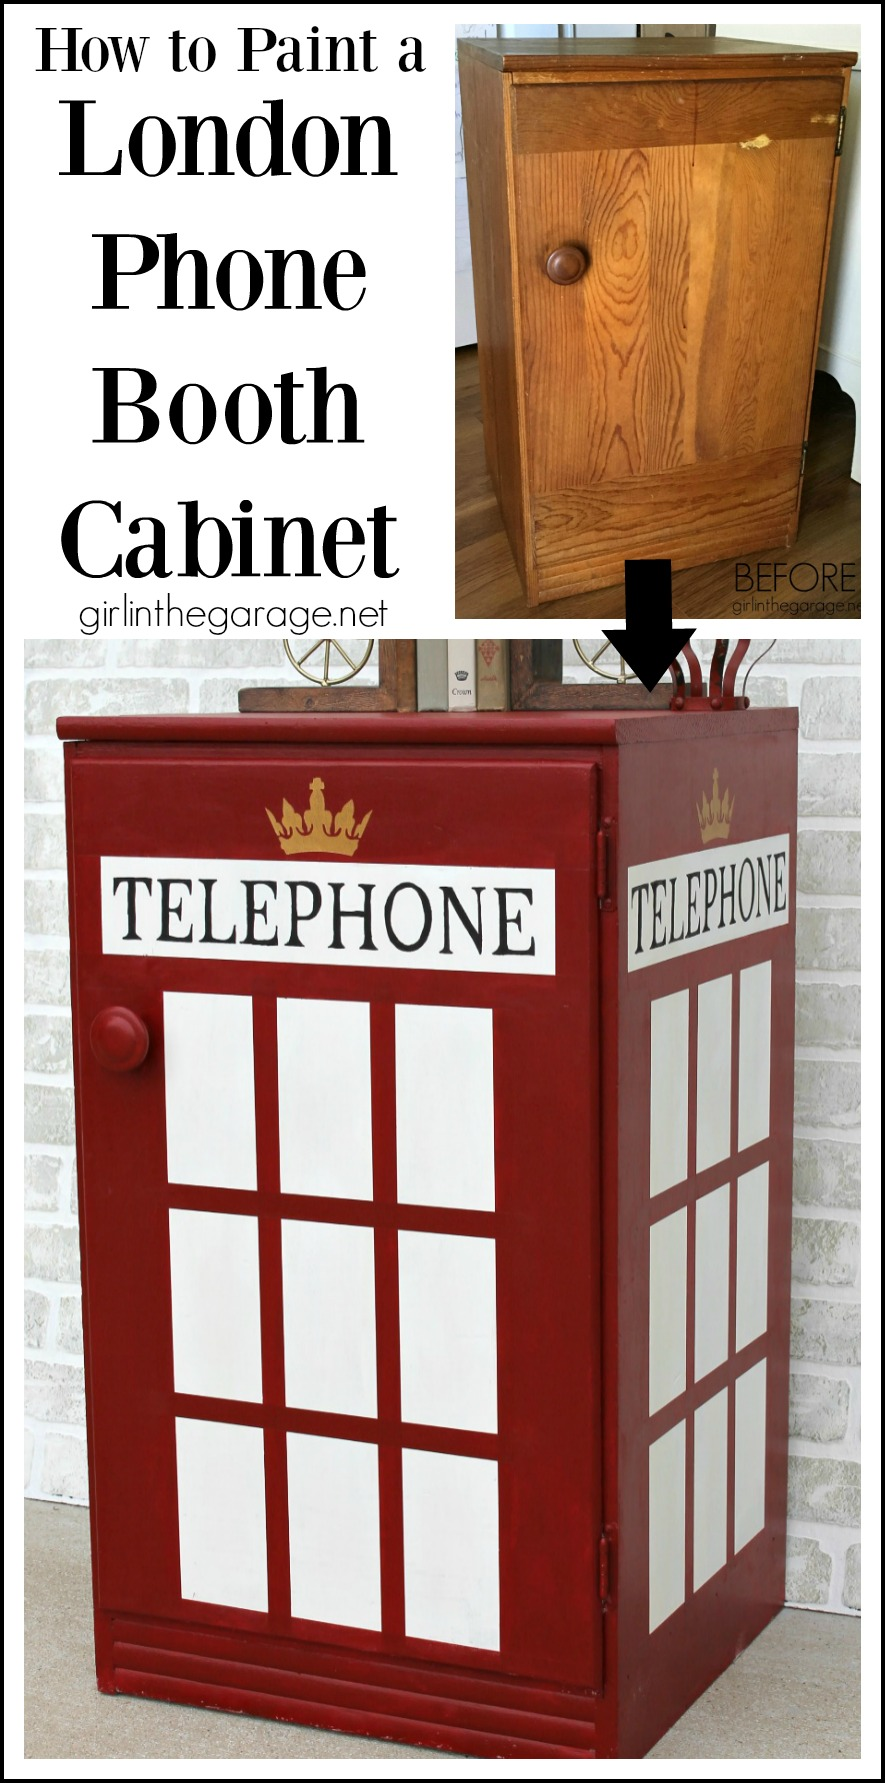 how-to-paint-london-phone-booth-cabinet